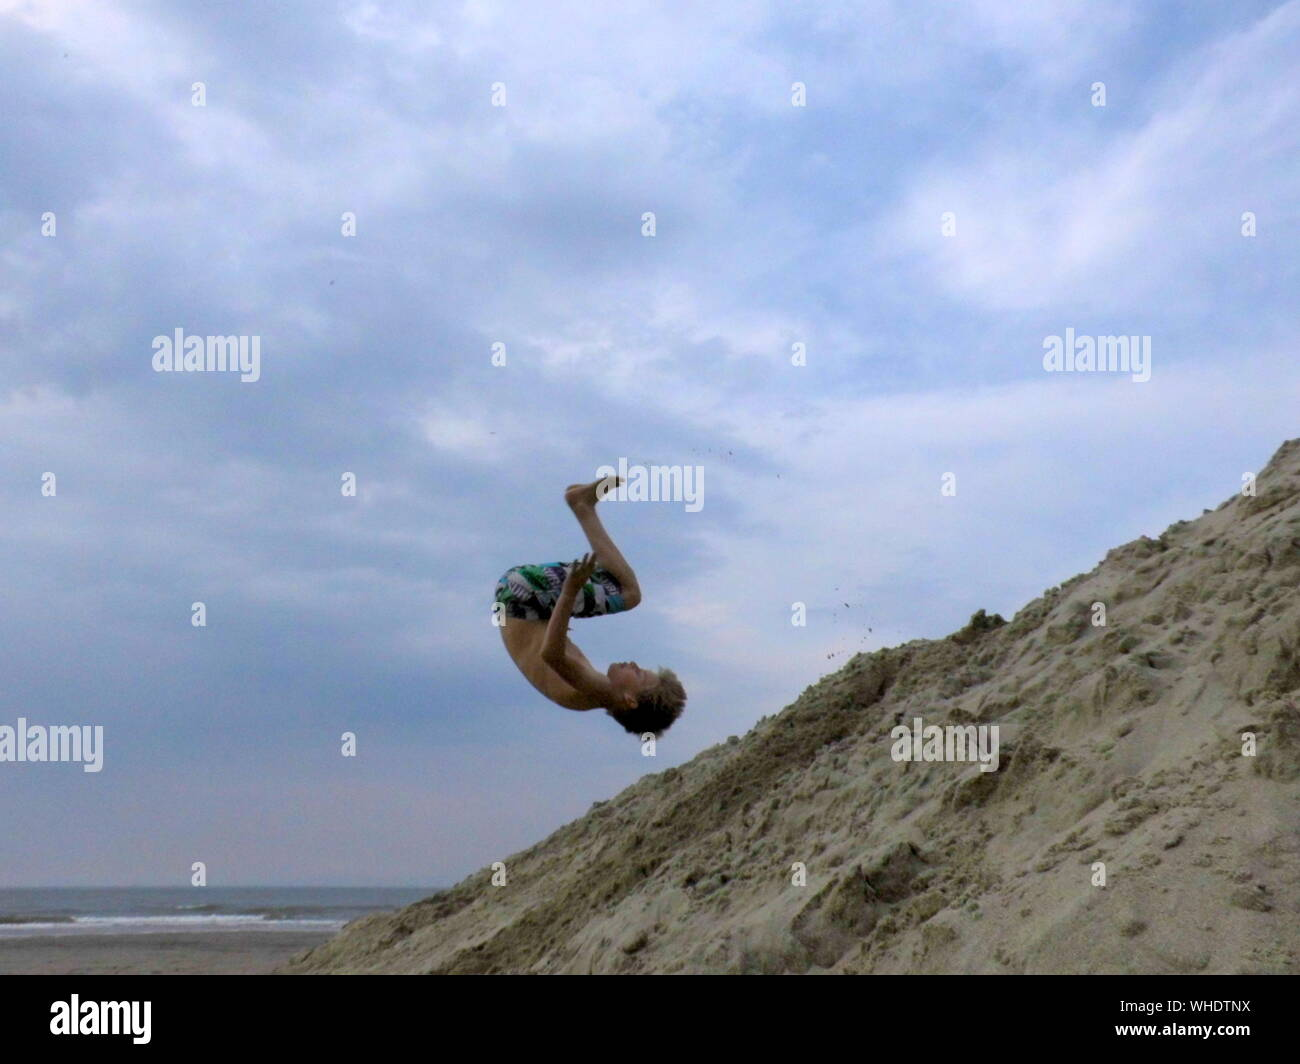 View Of Boy Somersaulting On Beach Stock Photo